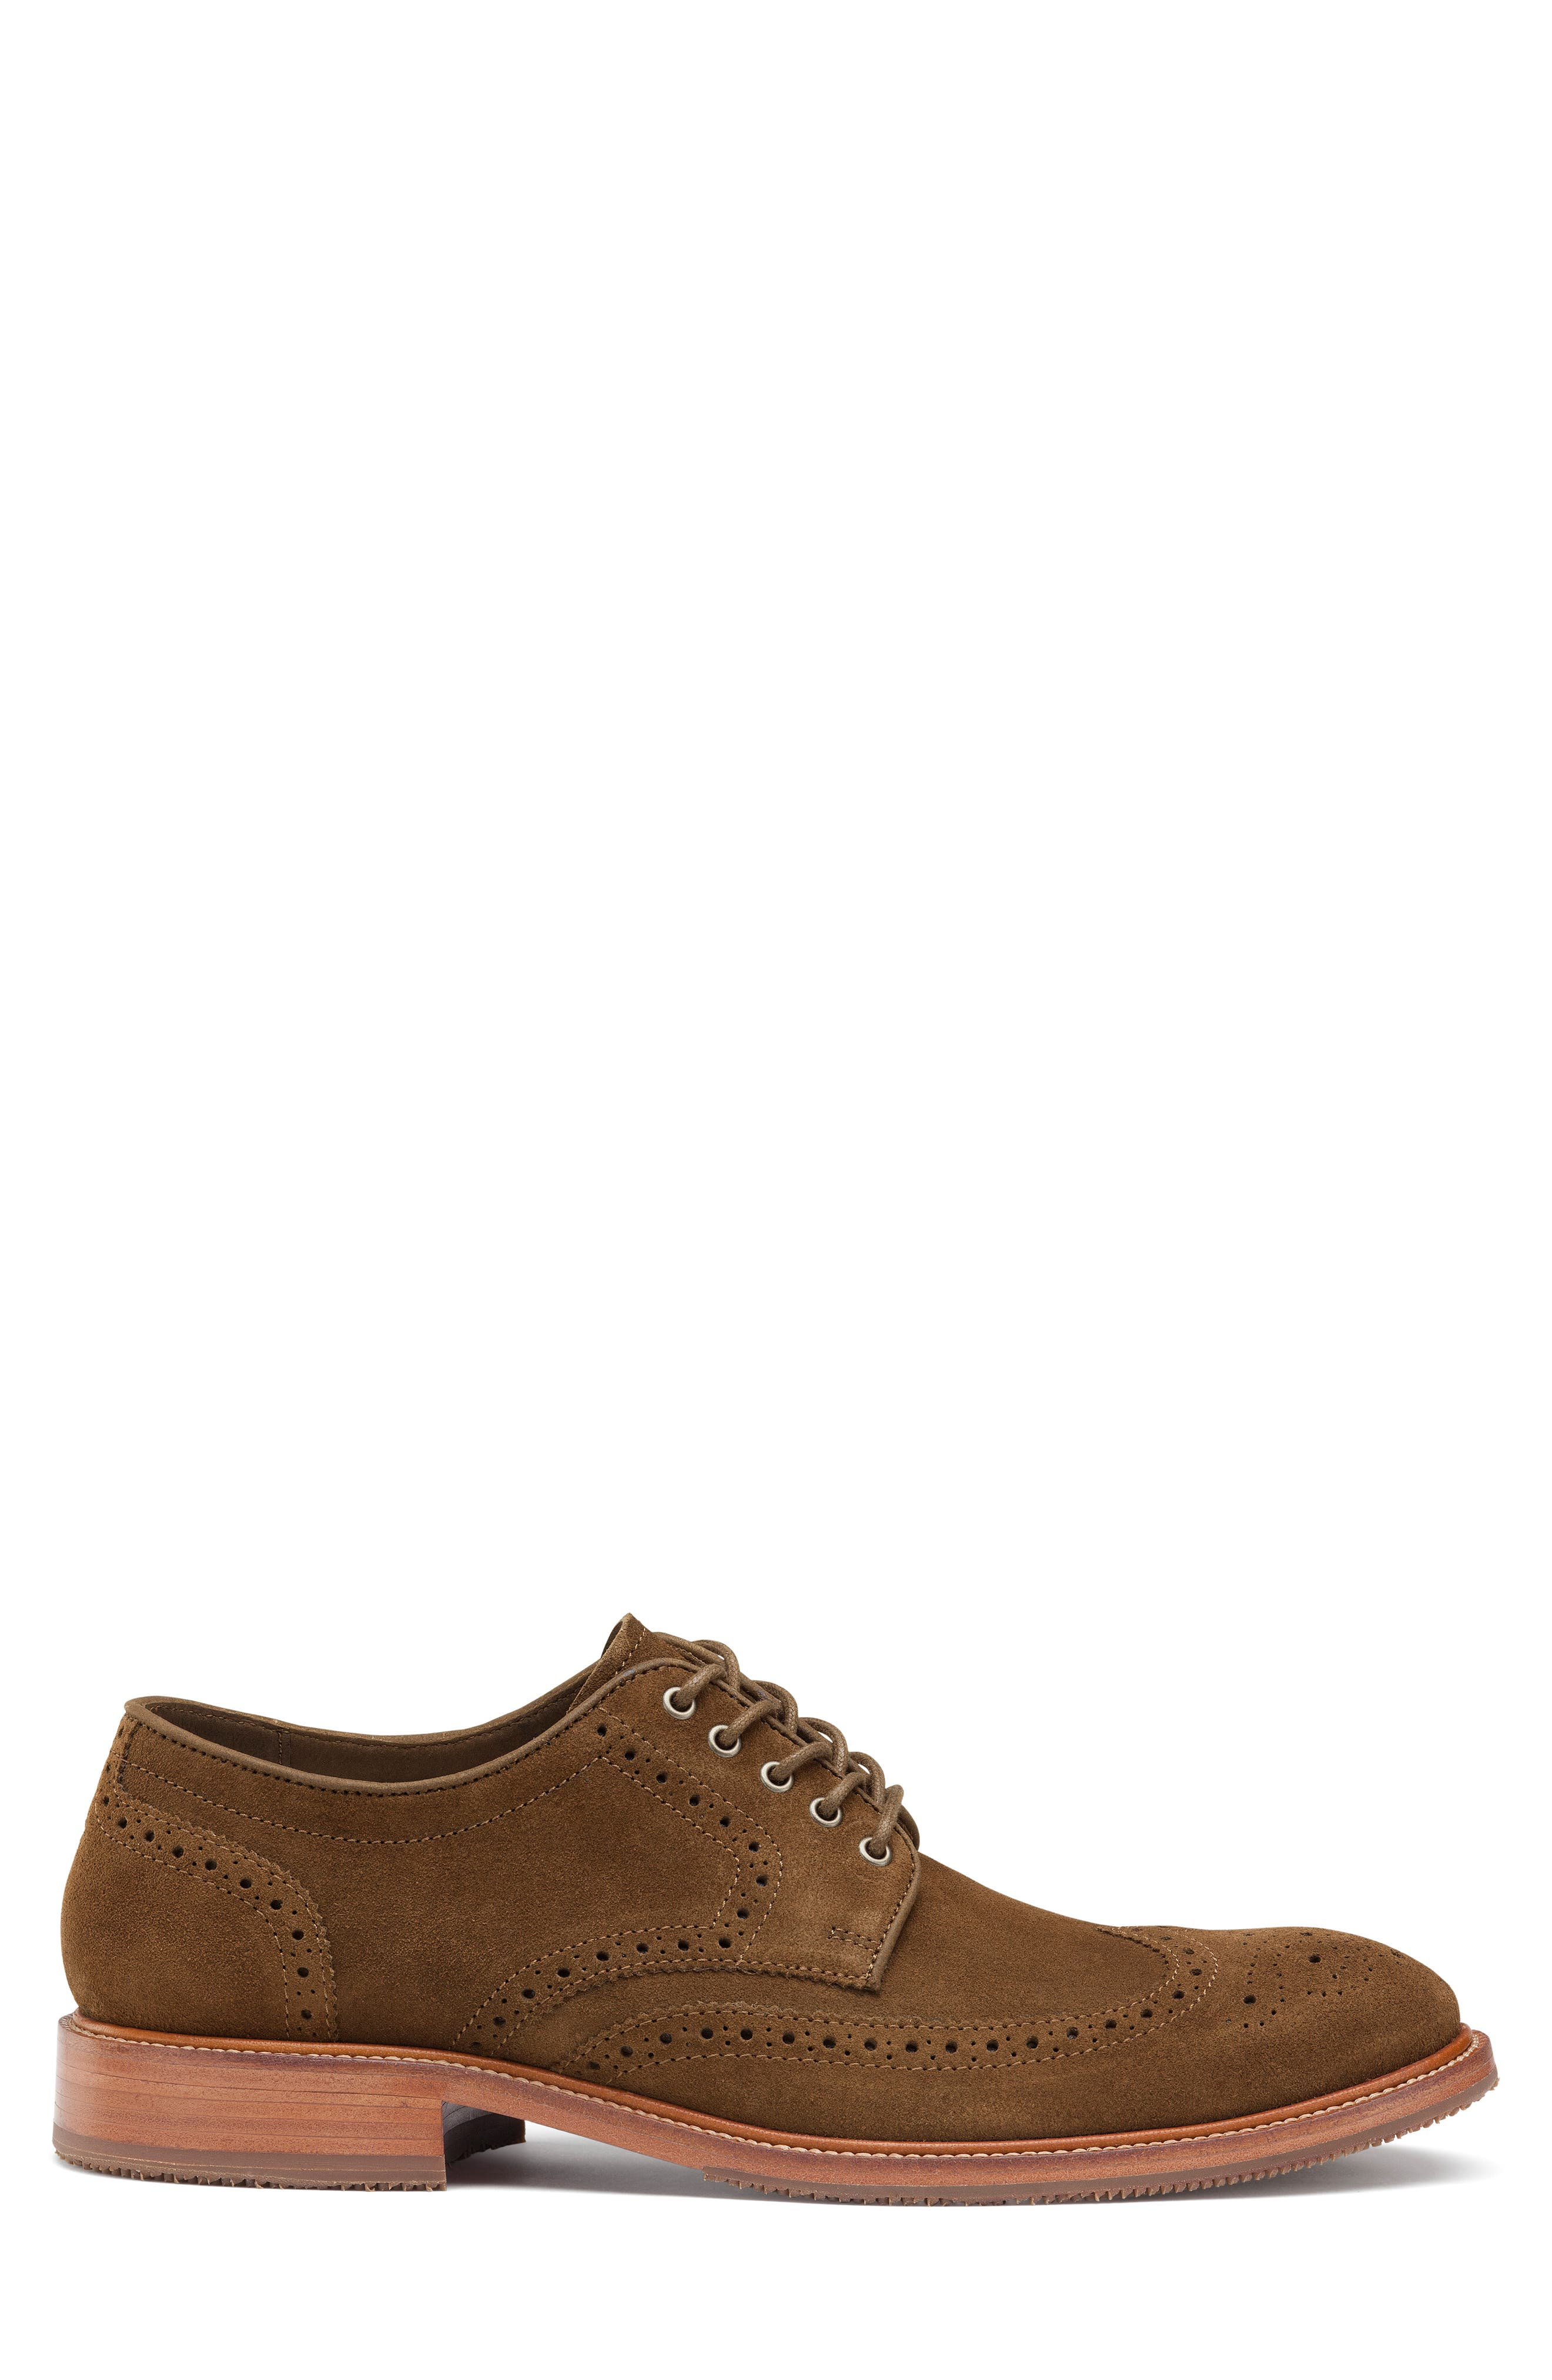 TRASK, Logan Wingtip Derby, Alternate thumbnail 3, color, SNUFF SUEDE